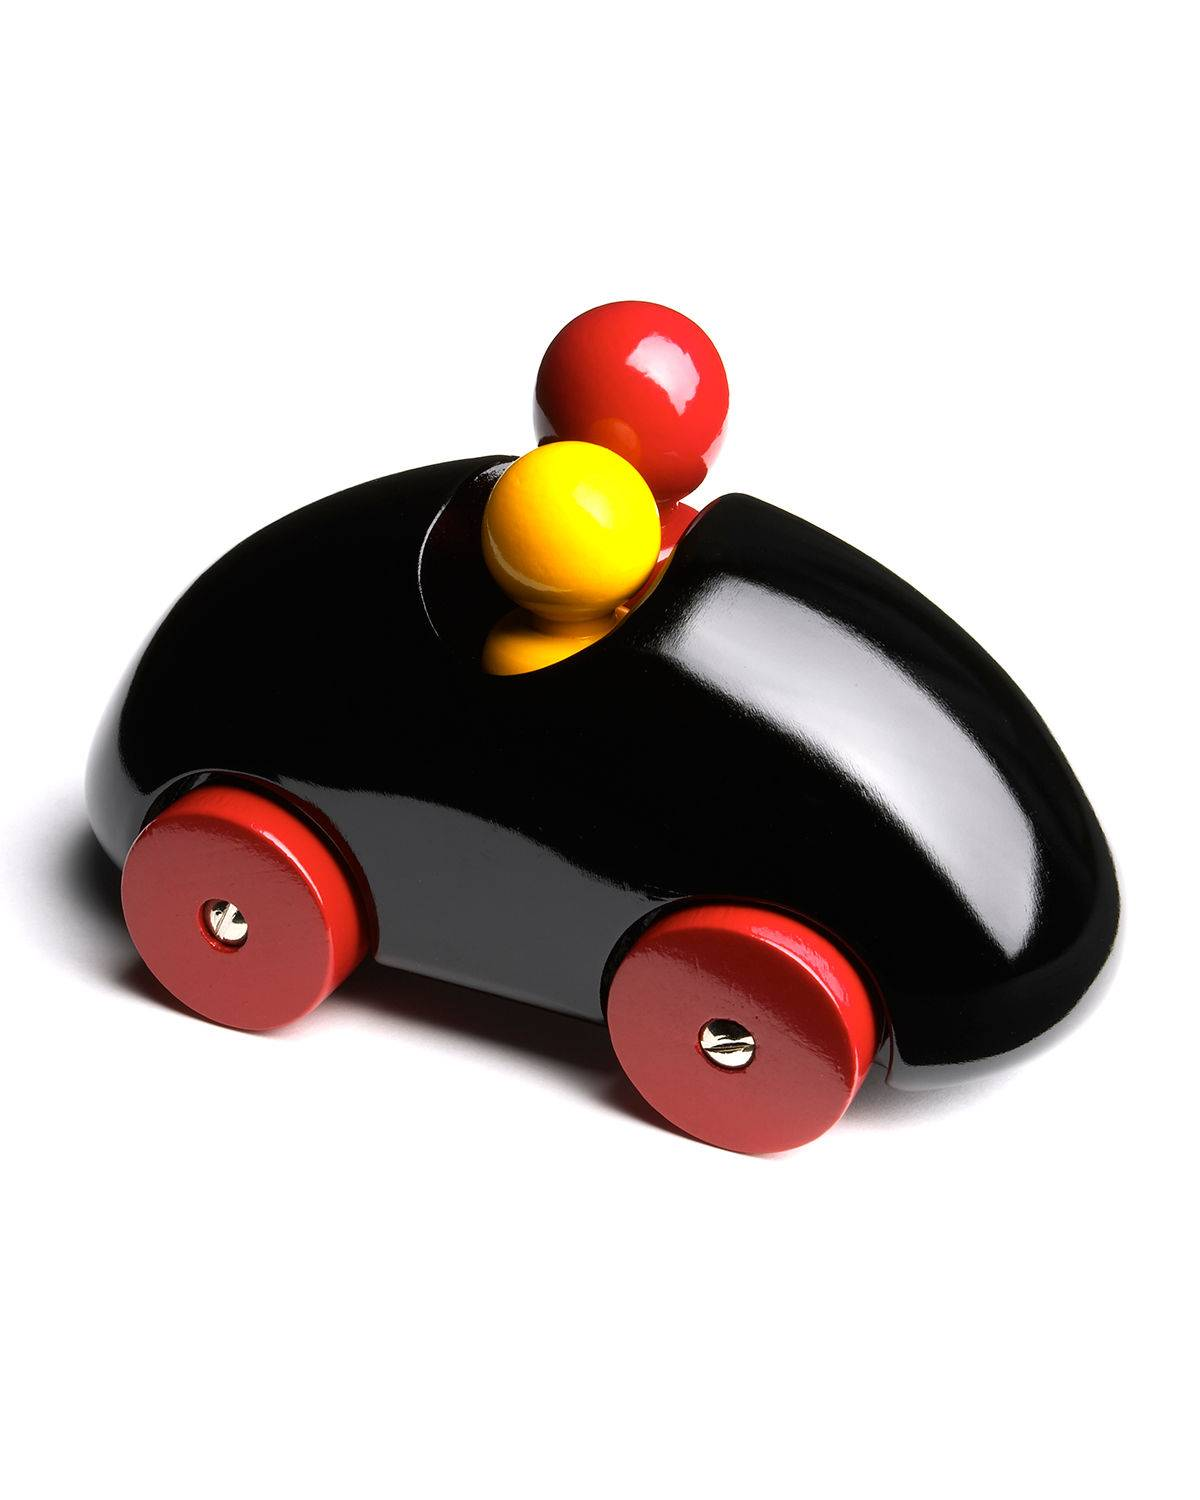 Playsam Rally Streamliner Wooden Toy Car